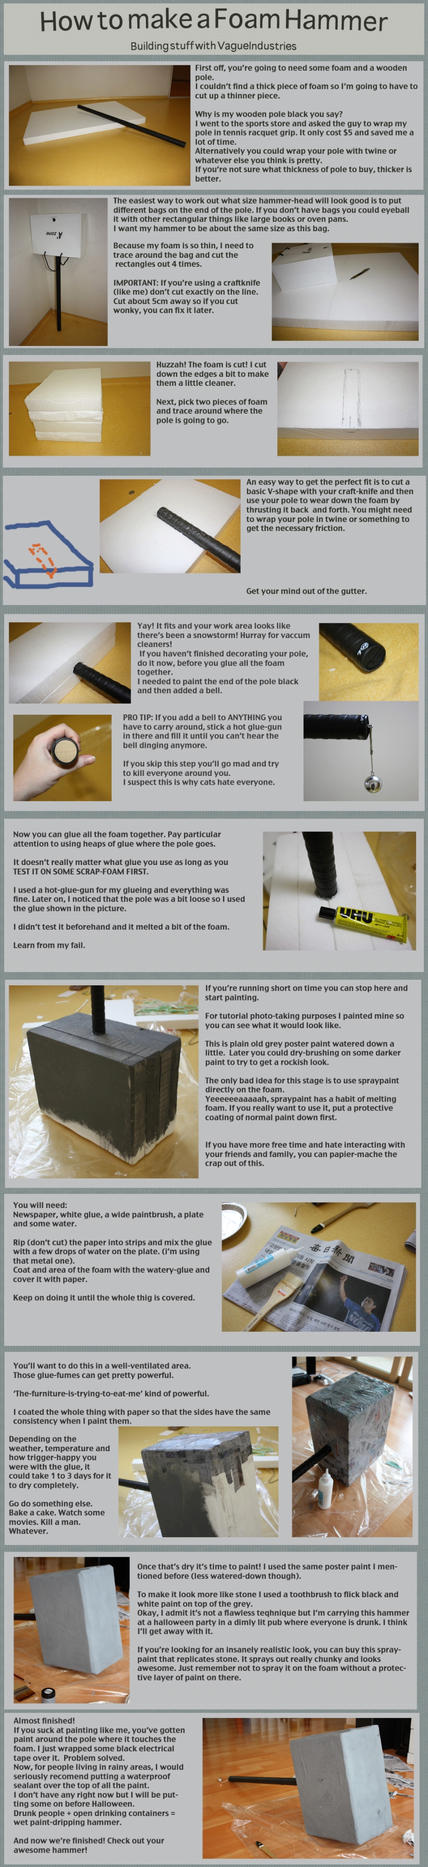 Foam Hammer Tutorial by VagueIndustries